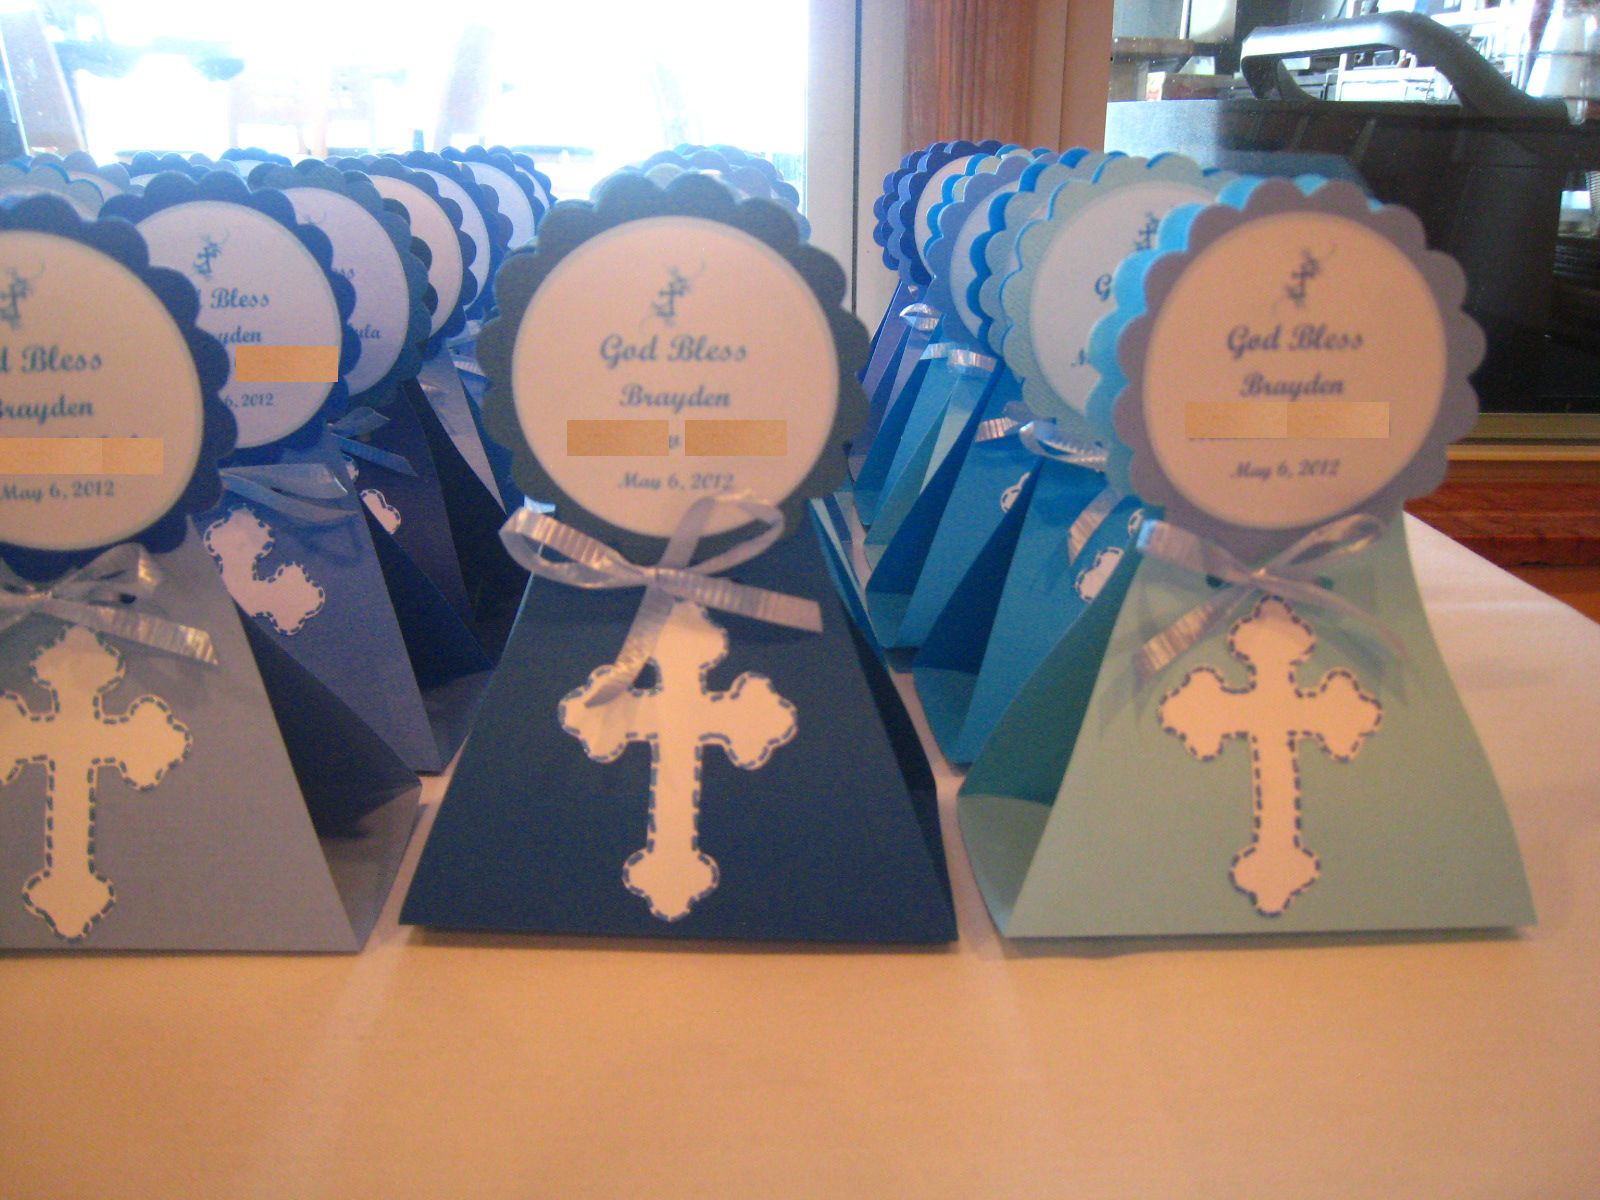 Baptism Favors Made Cake Pop Holders From My Cricut They Were In Flavors Of Red Velvet With Cream Cheese Milk Choc With Mc And Lemon With Lemon Frosting